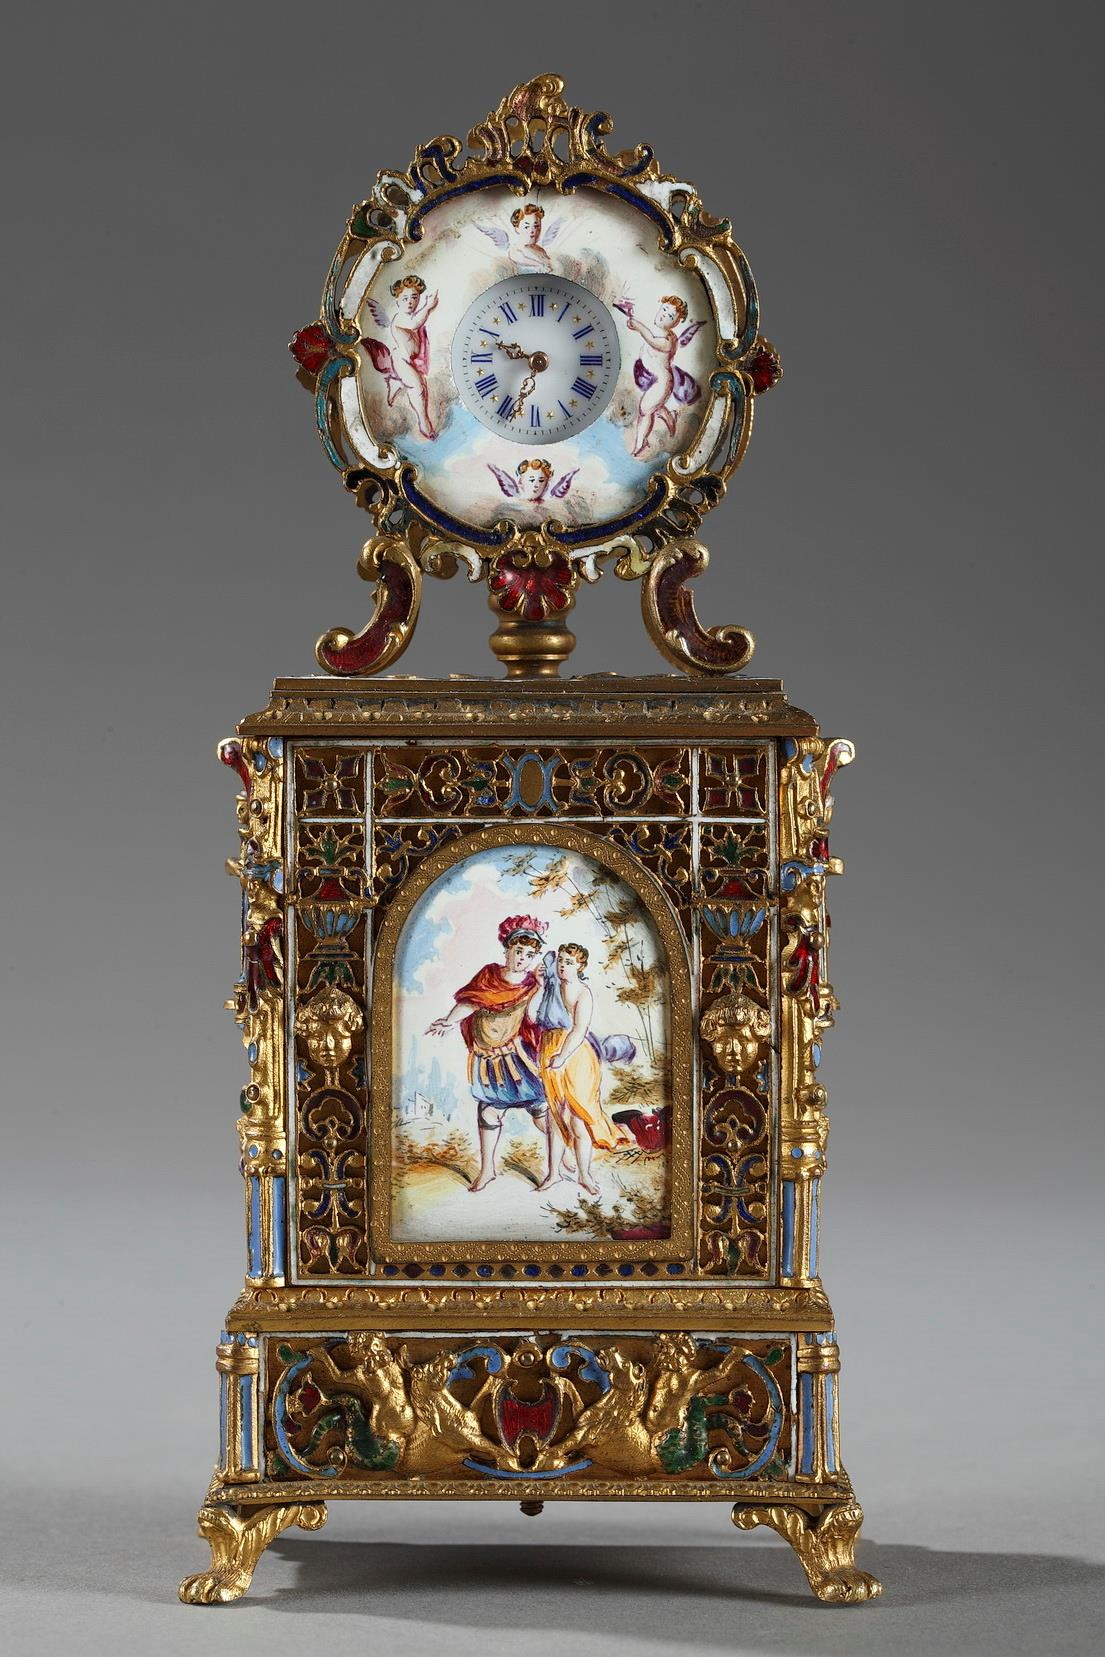 19th century Viennese enamel clock.